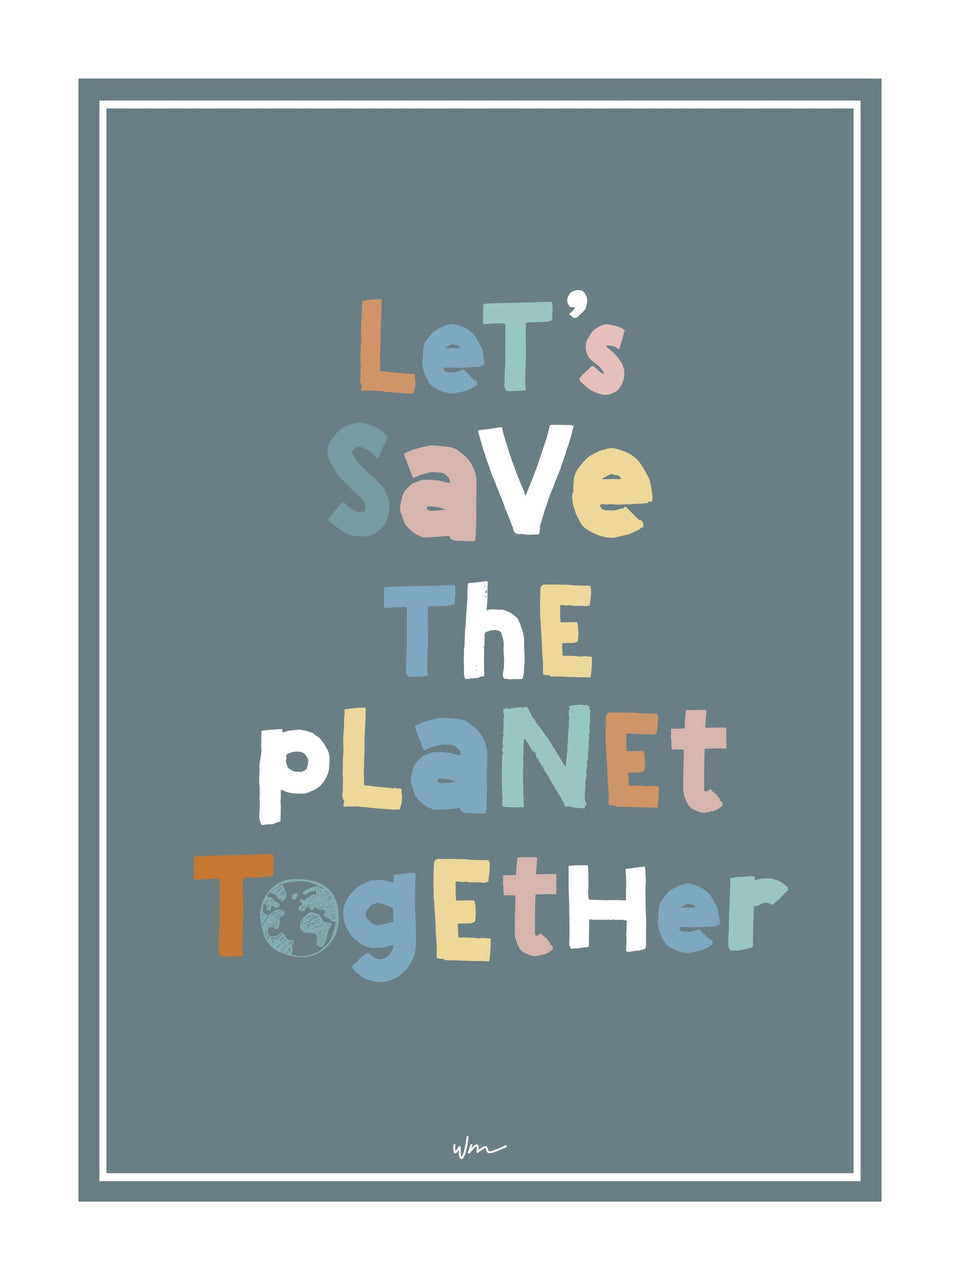 Let's save the world poster decal - Several Colours